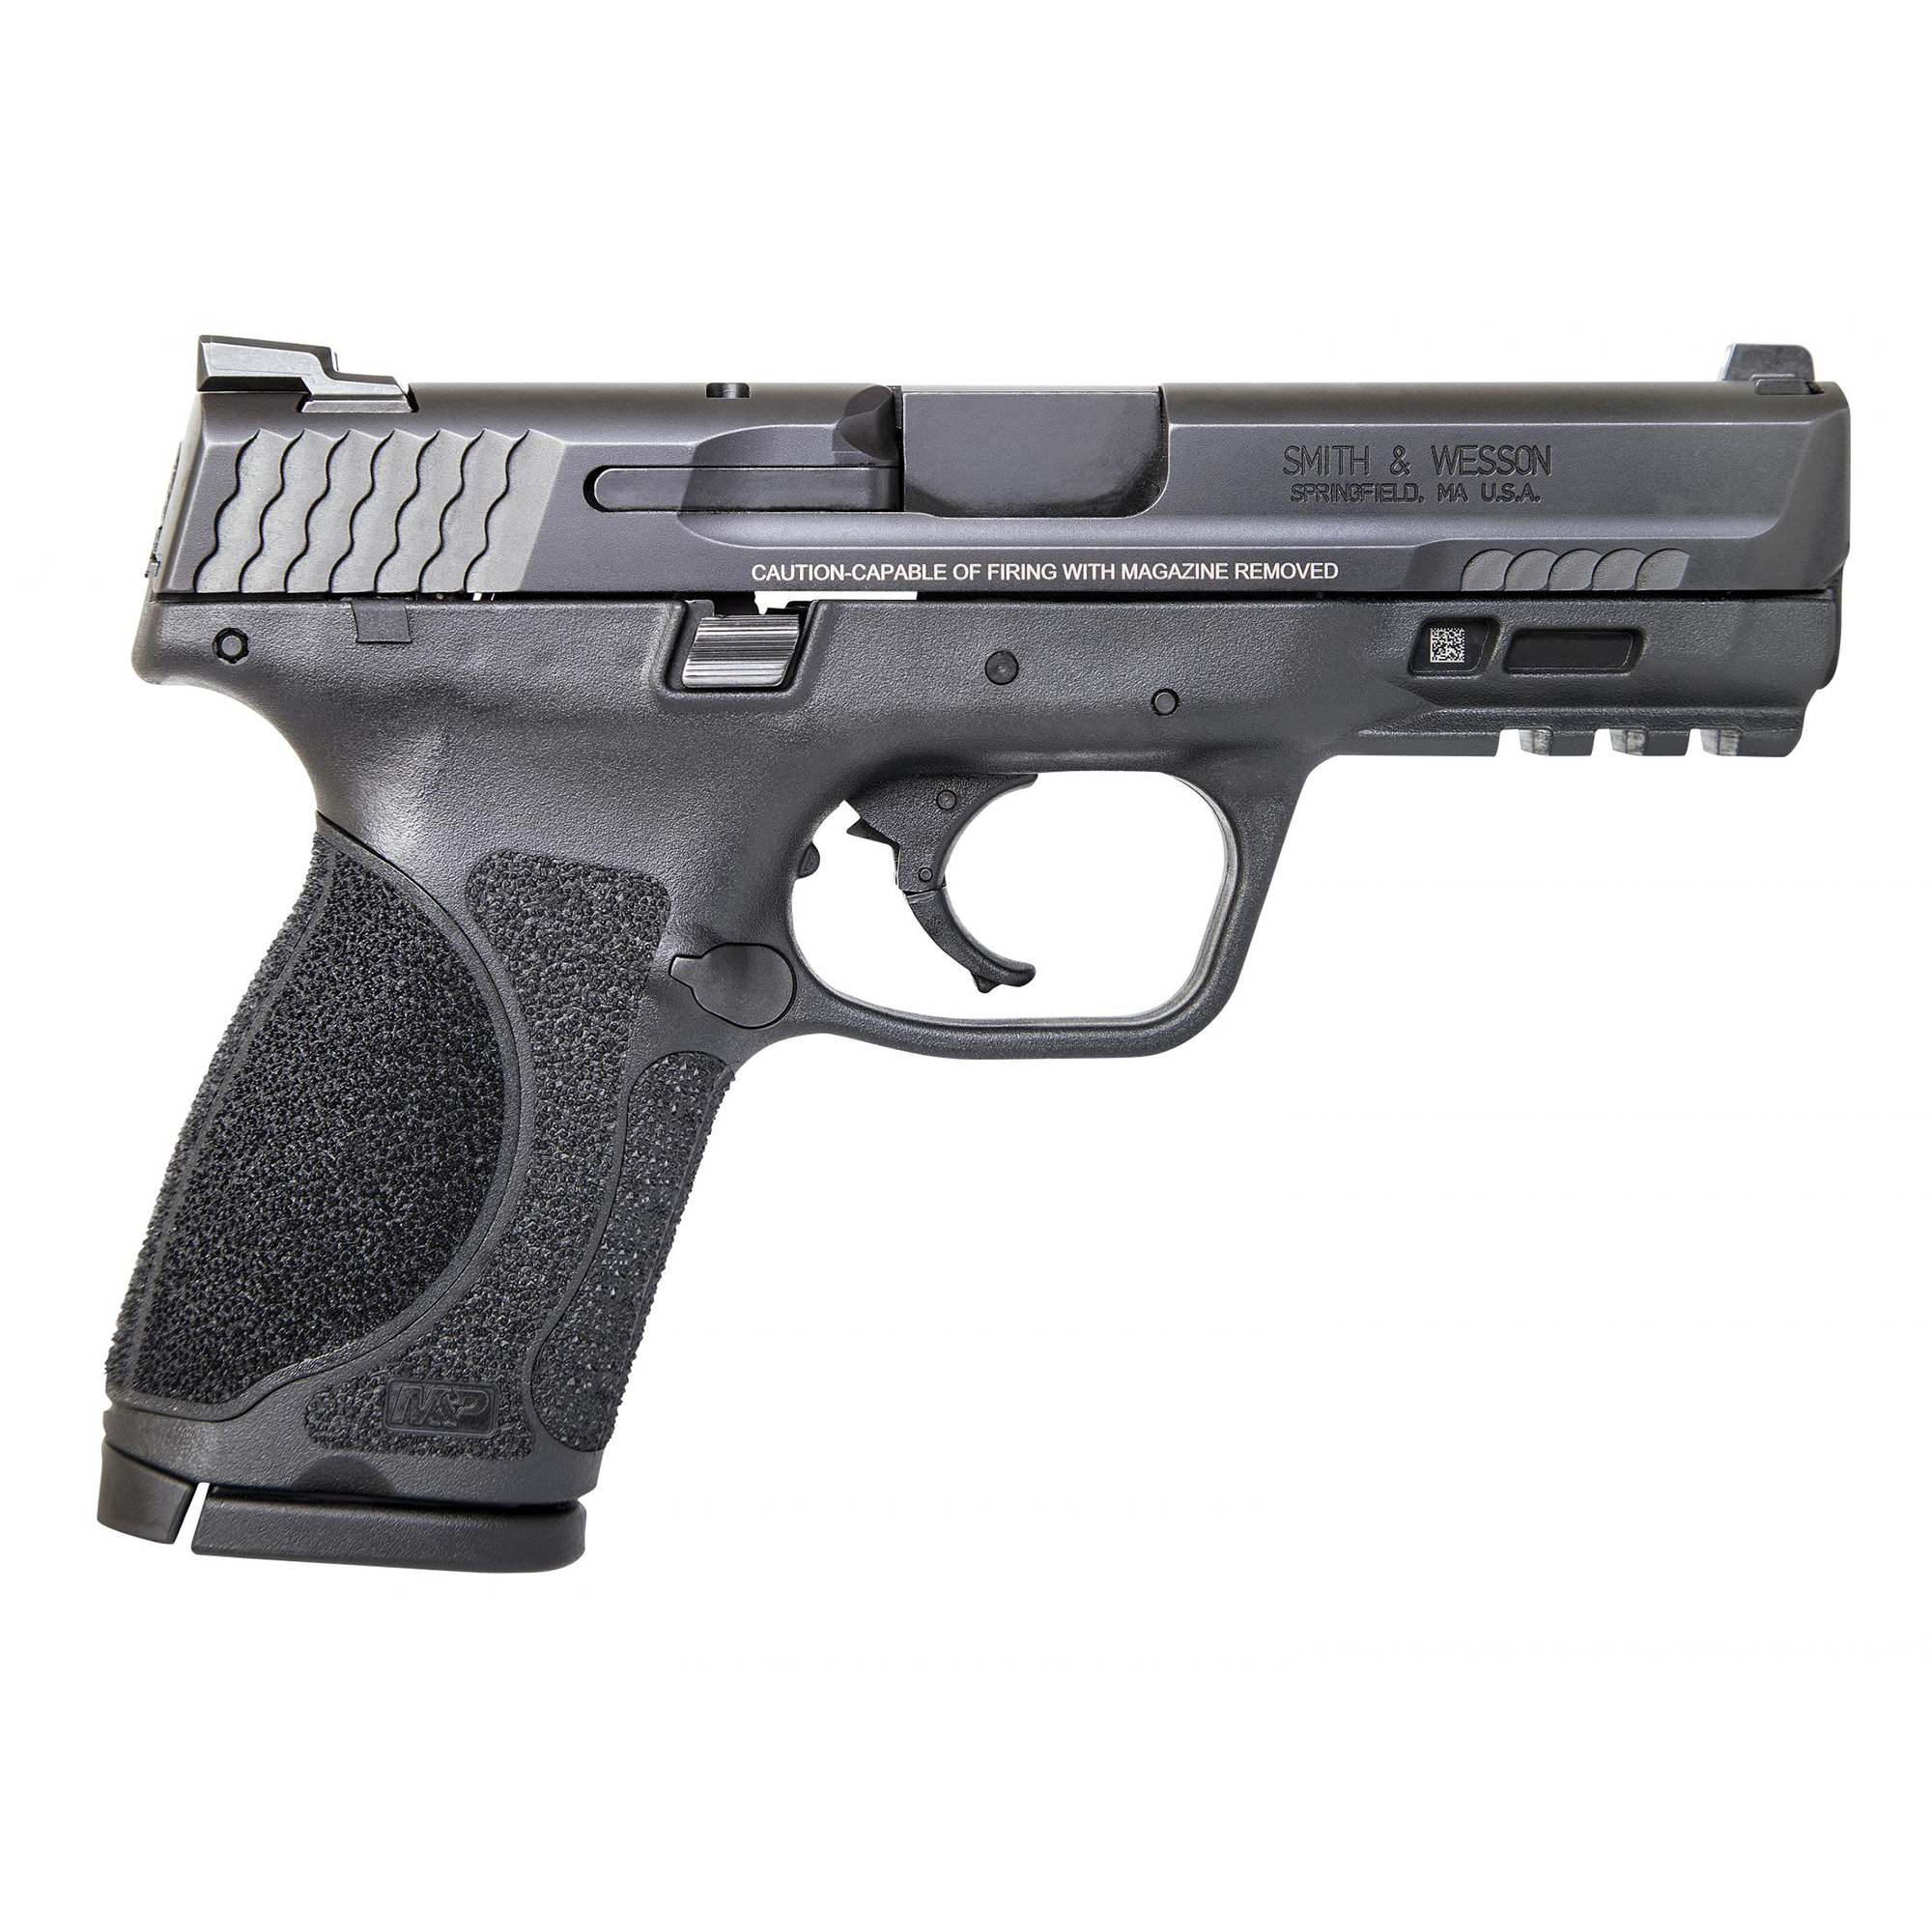 Smith & Wesson M & P M2.0 Compact Handgun